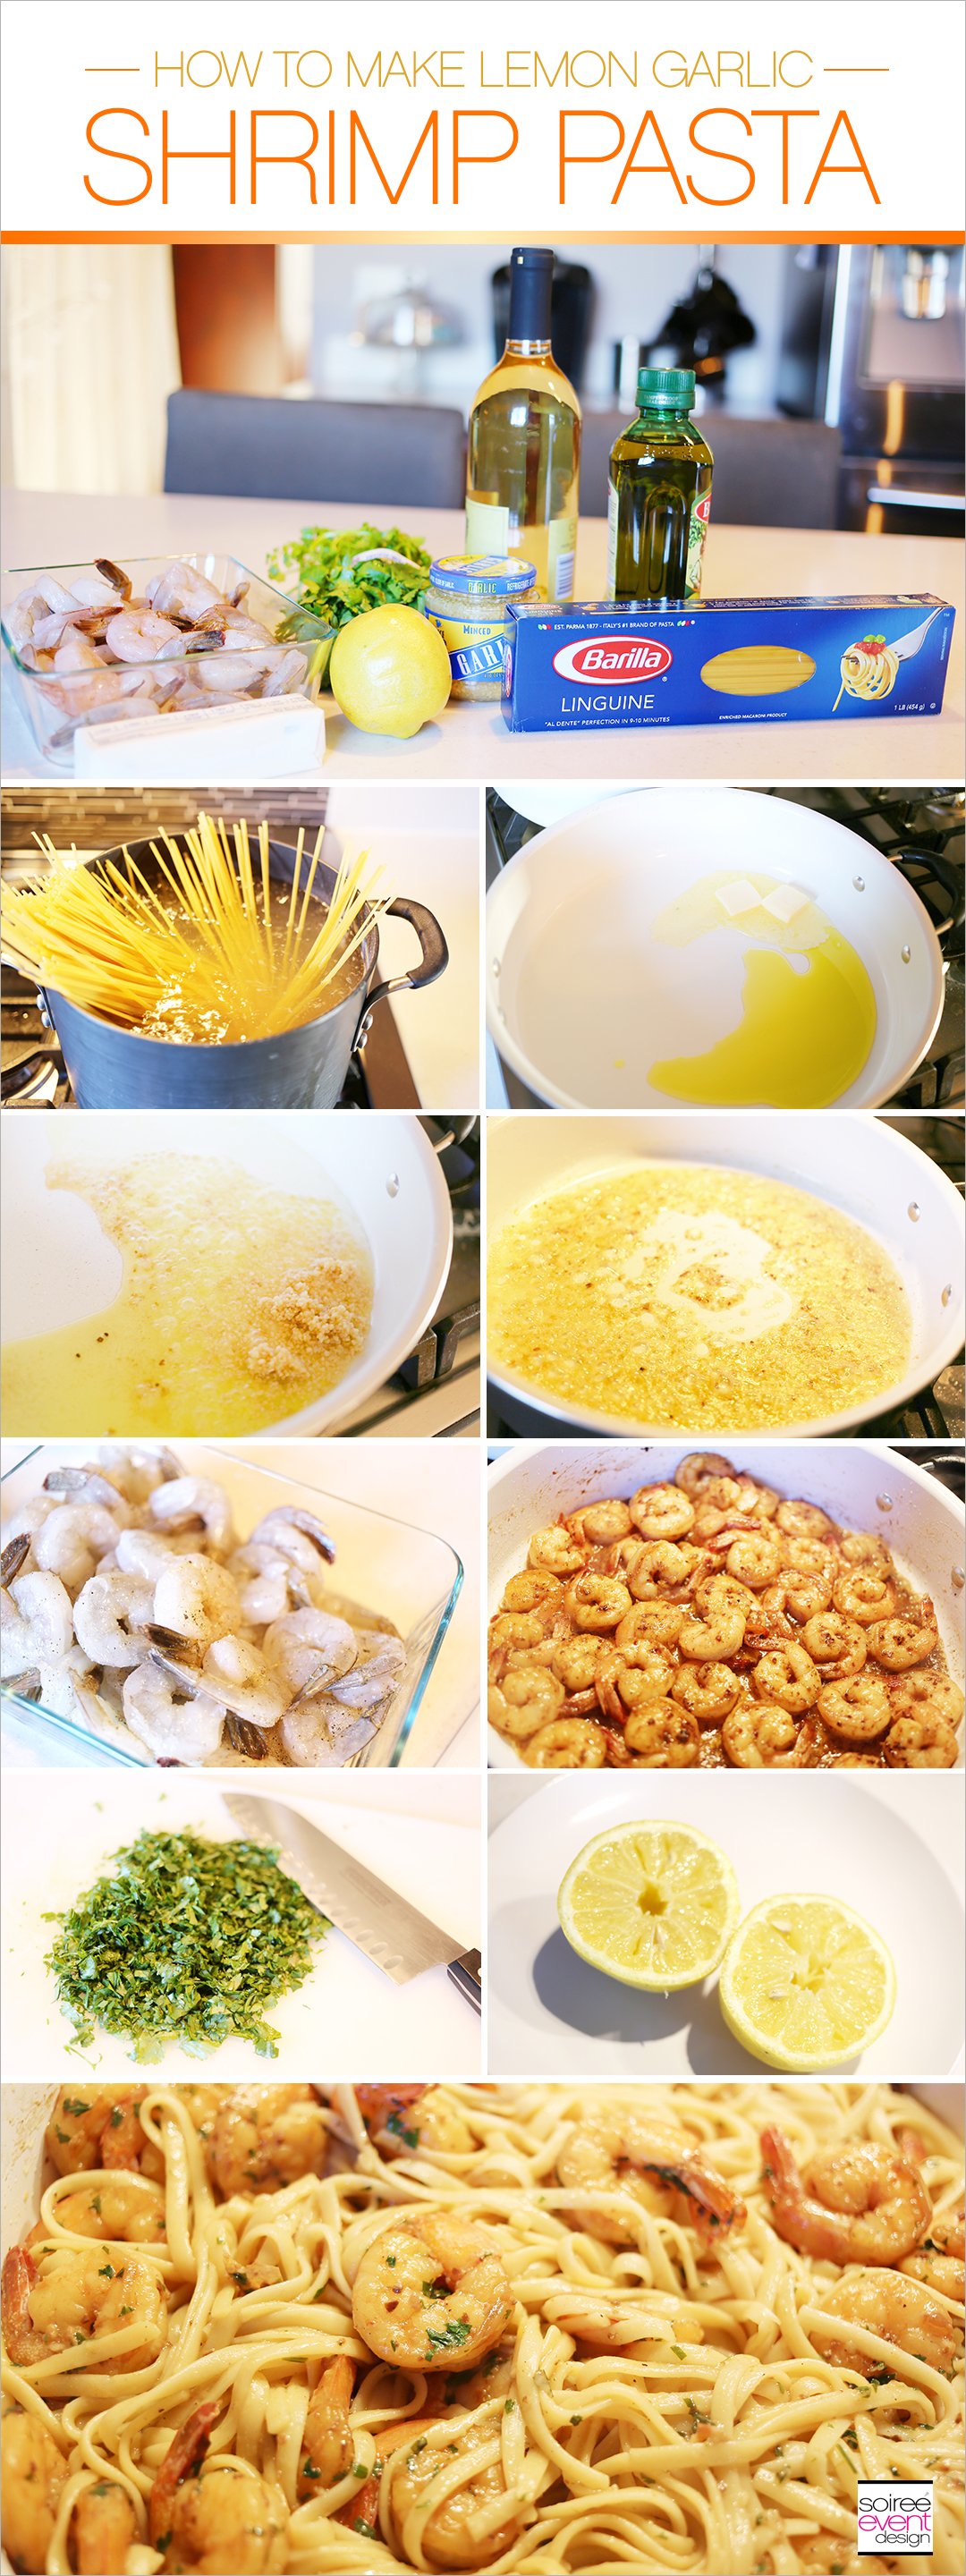 How to Make Lemon Garlic Shrimp Pasta